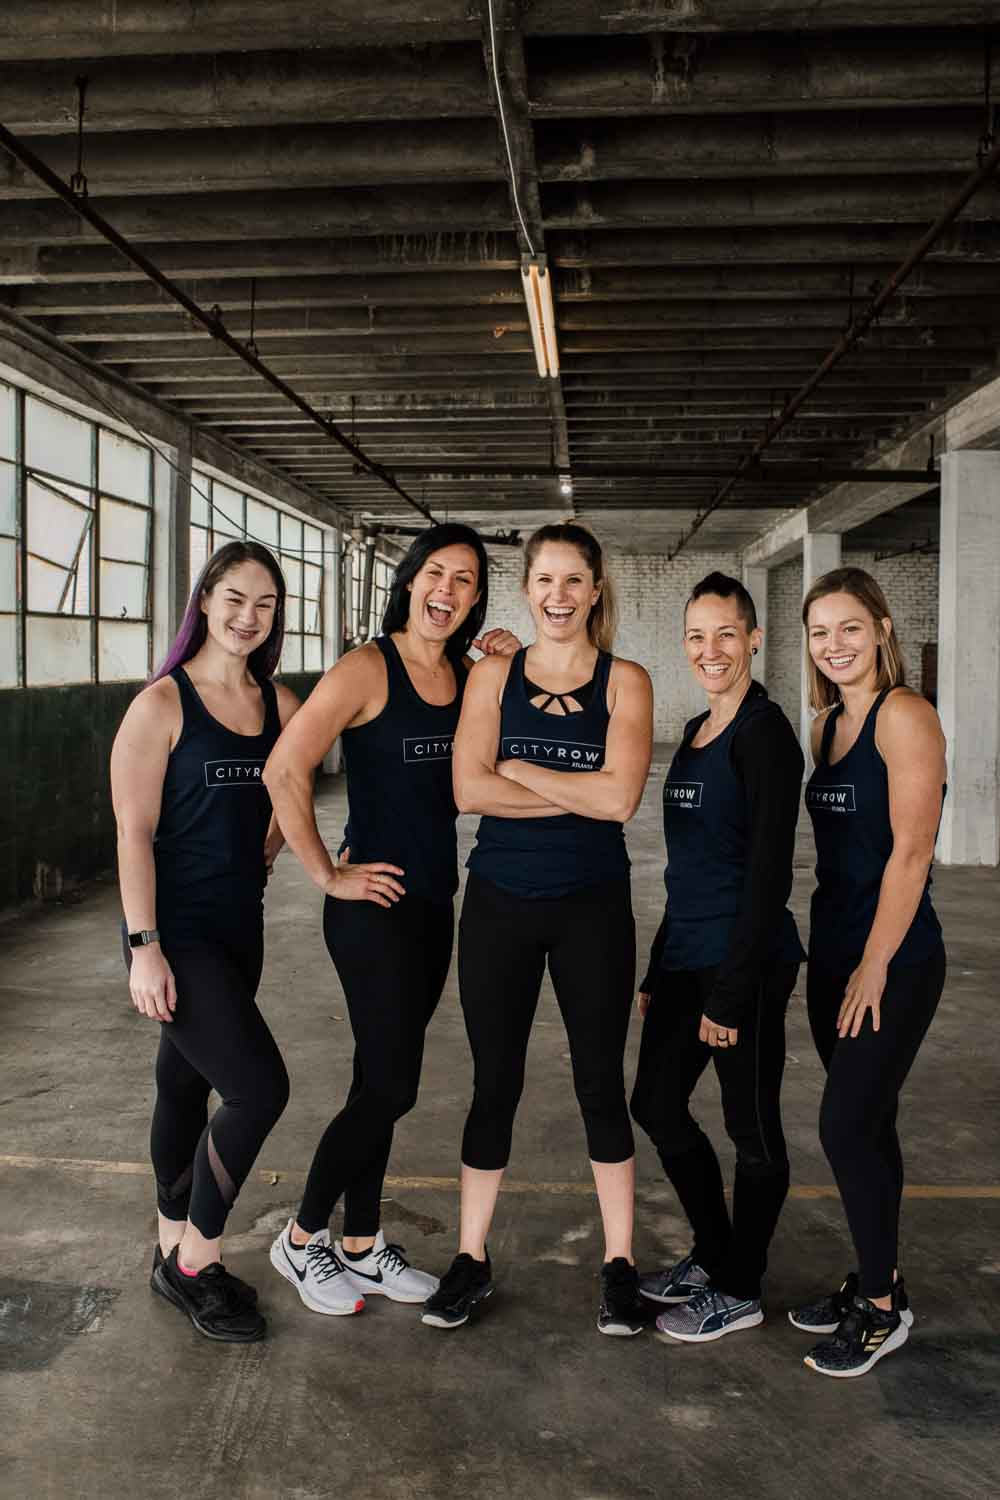 City Row atlanta fitness studio photography